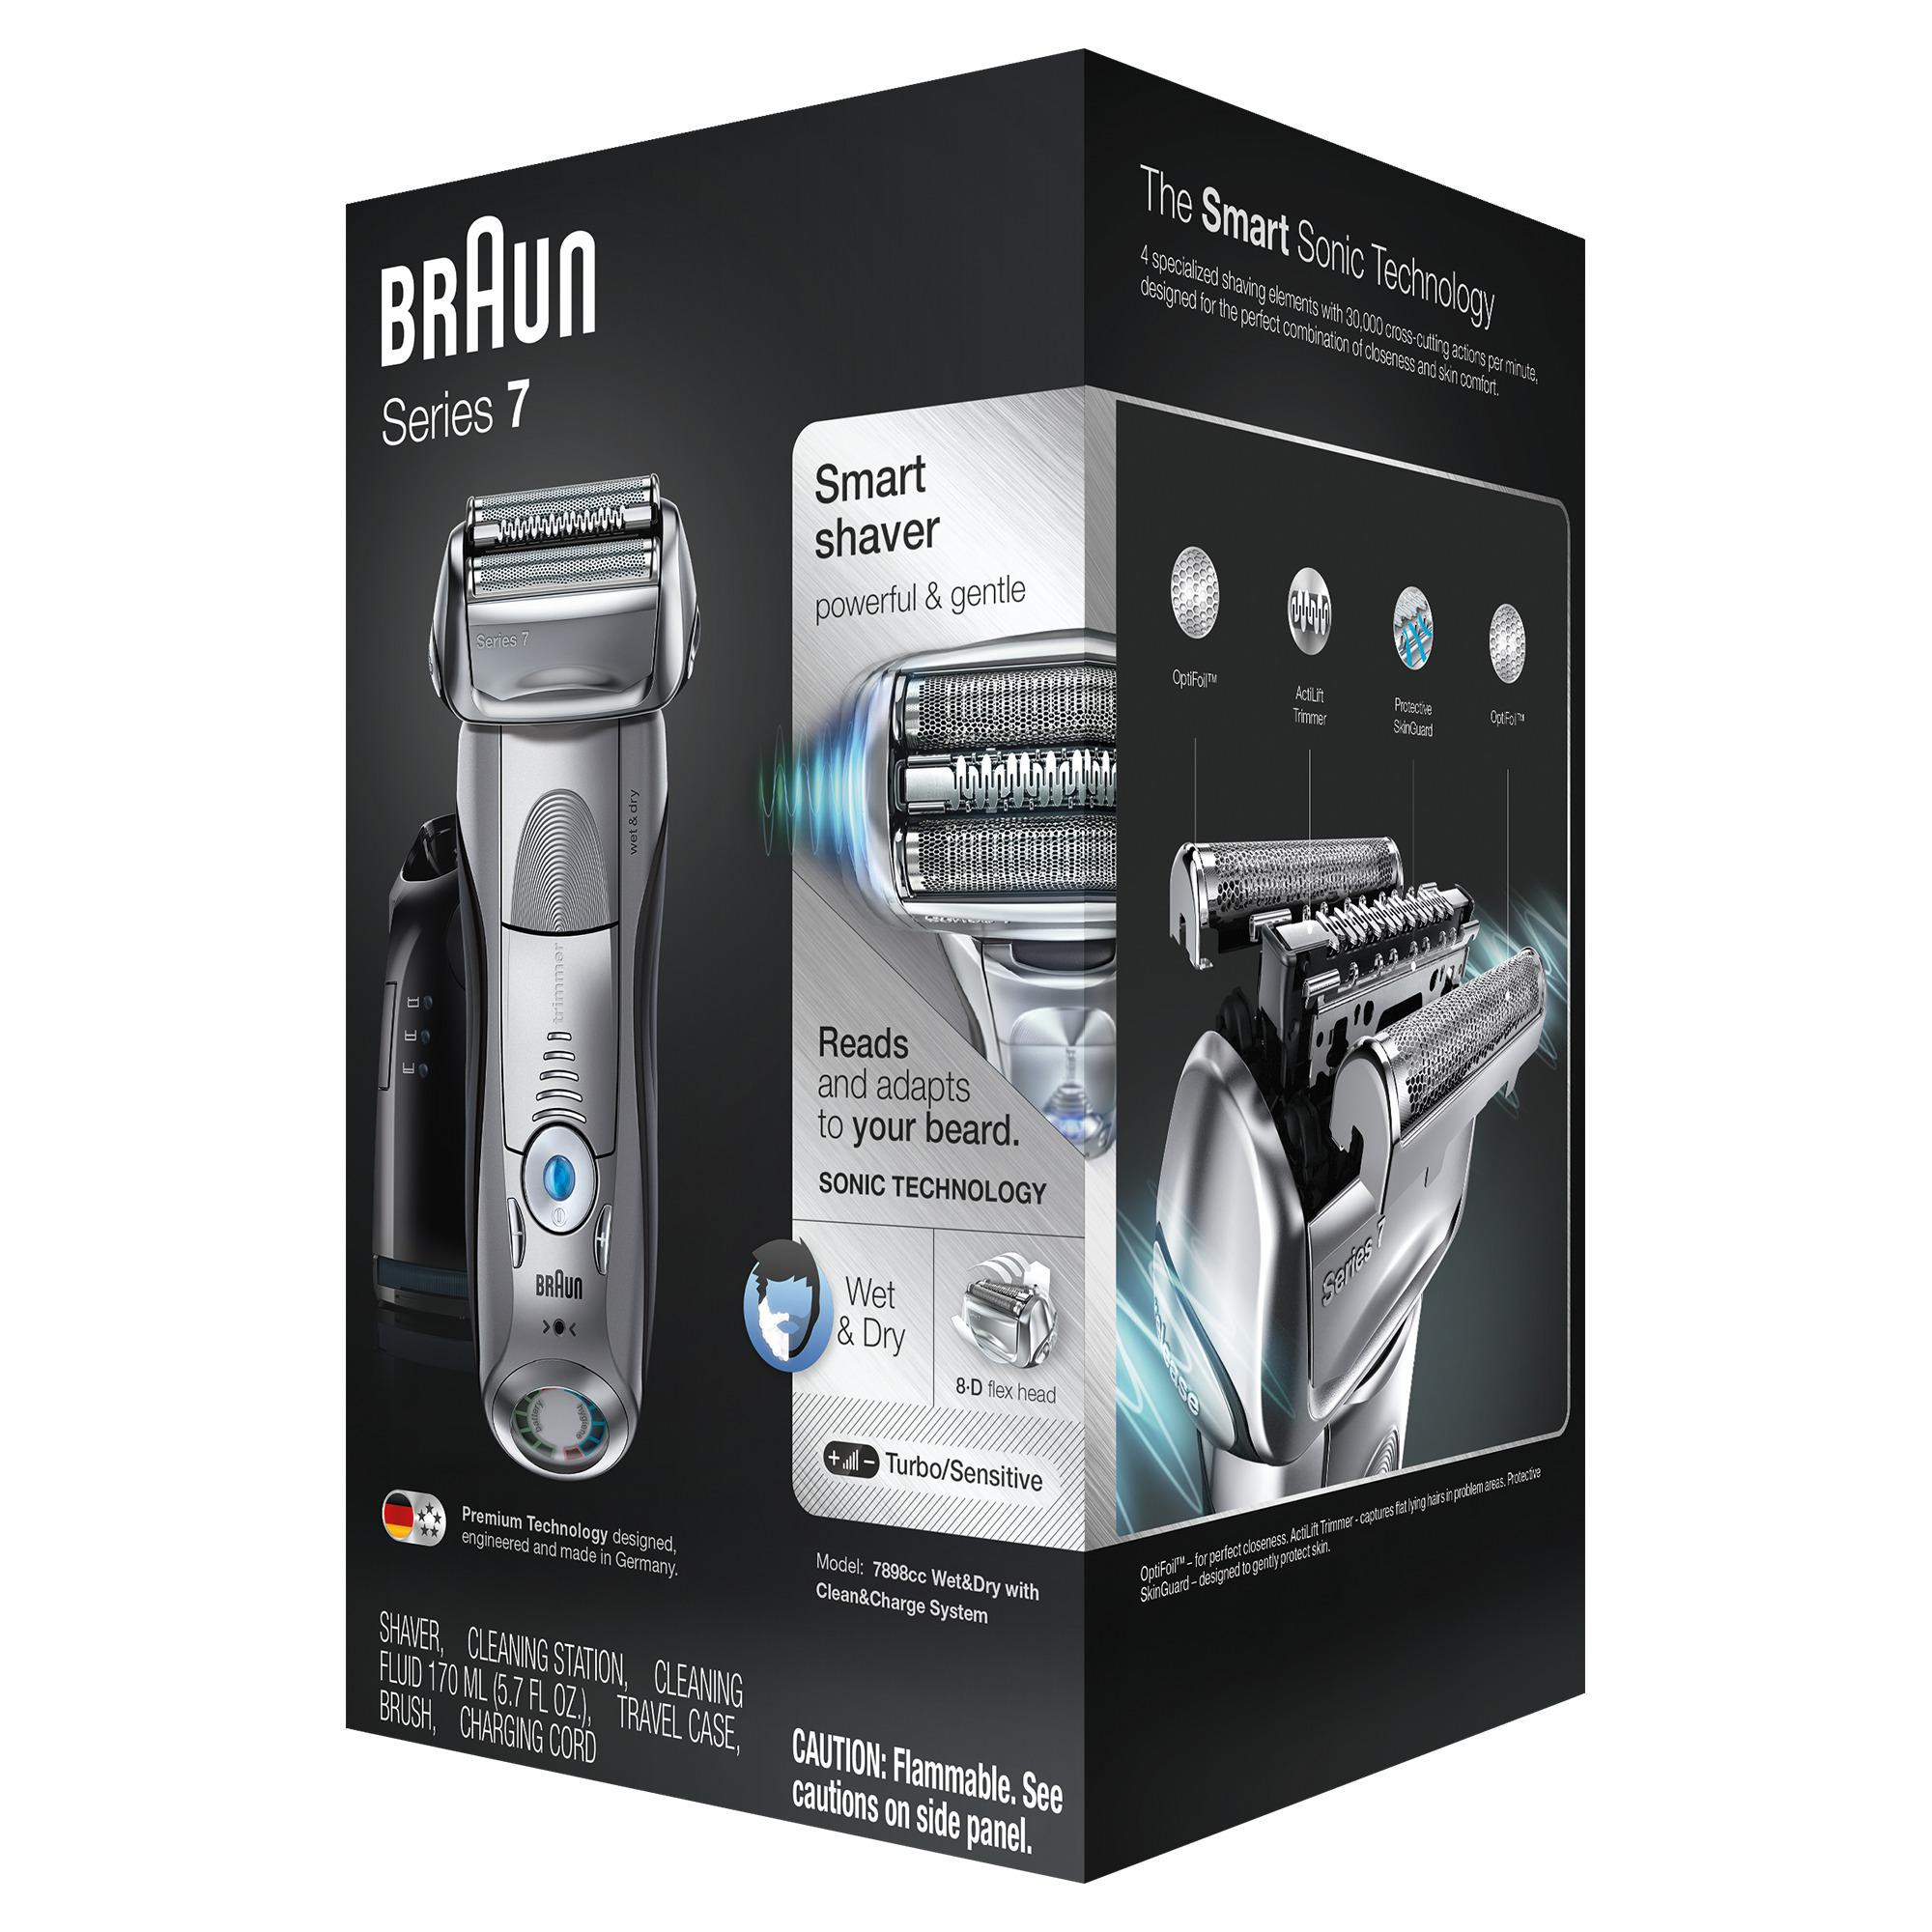 Braun Series 7 Men S Rechargeable Wet Dry Electric Foil Shaver With Cleaning Station Foil Shaver Braun Series 7 Best Electric Shaver